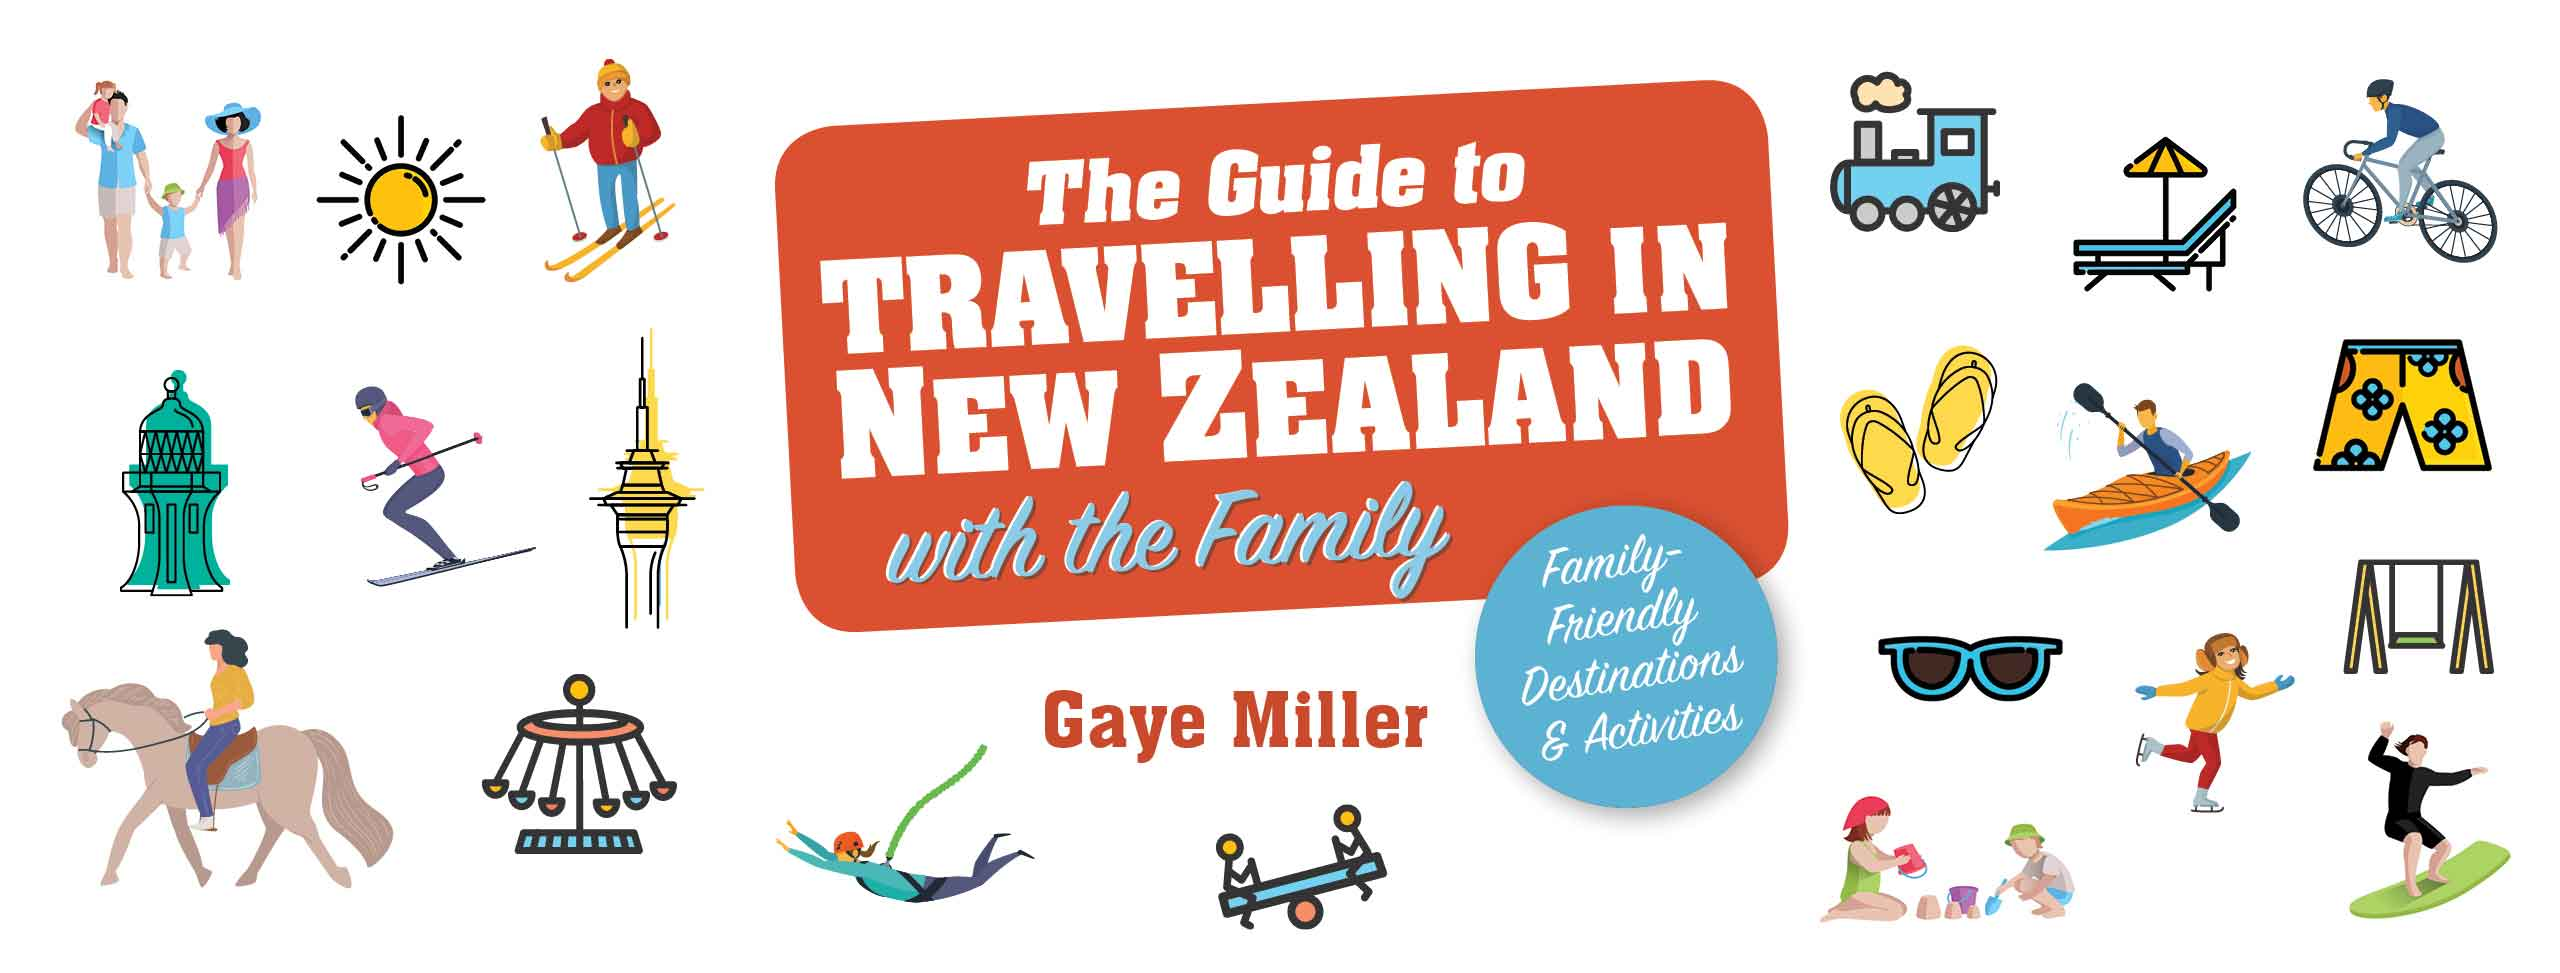 Guide to Travelling NZ